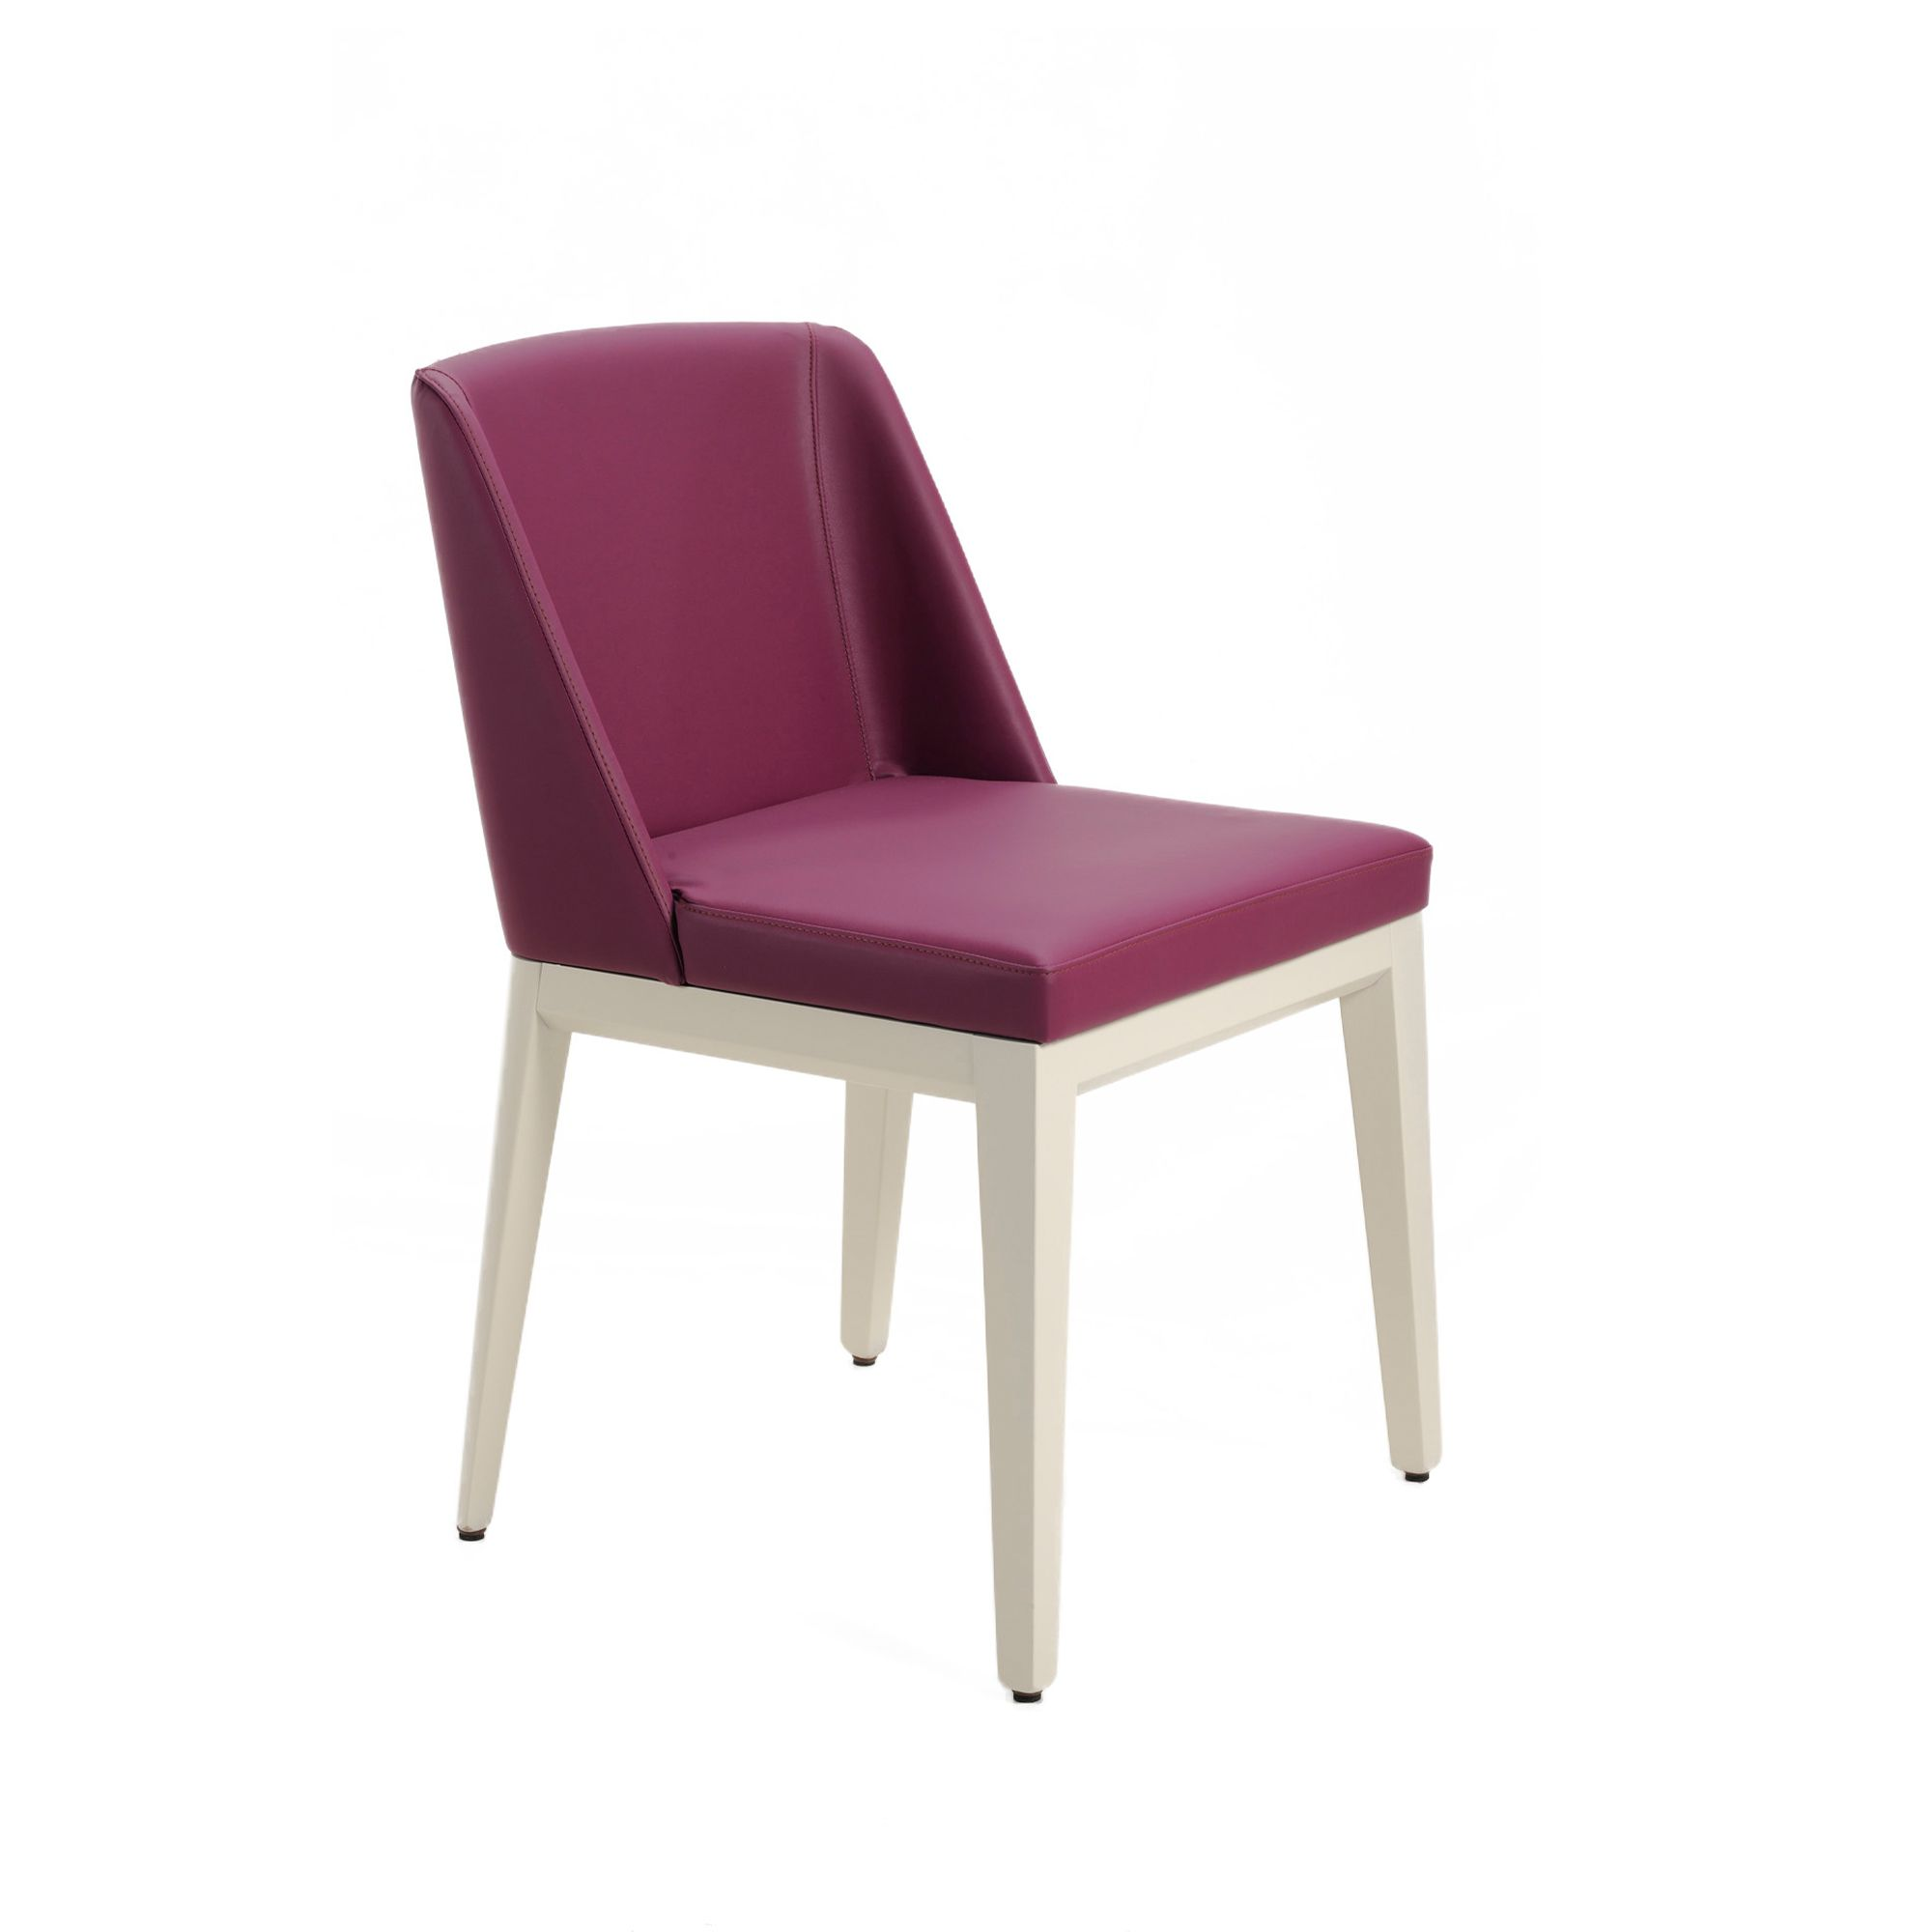 Model 850 chair in matching style